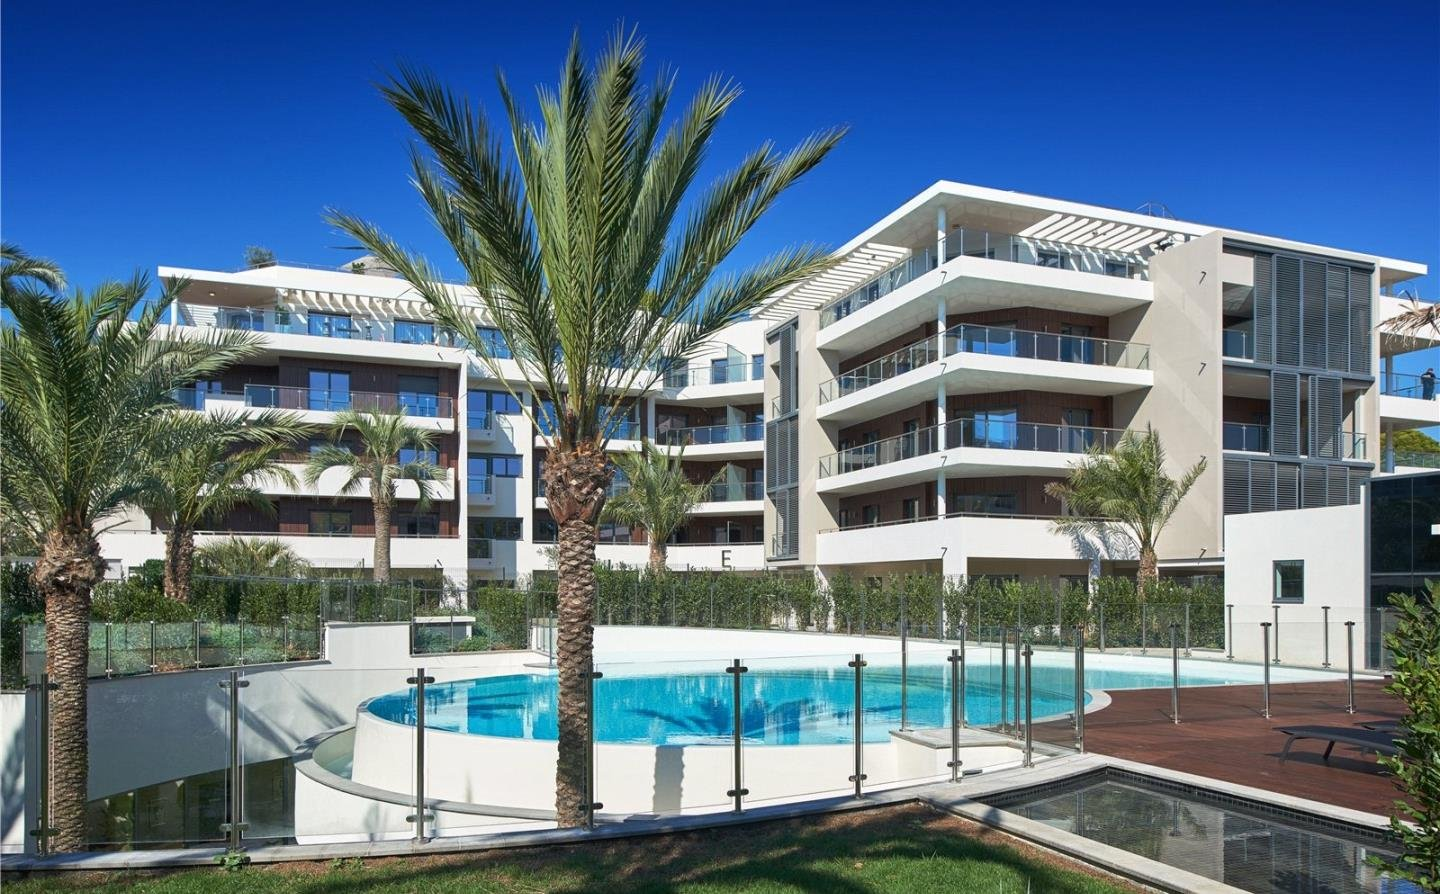 Cap d'Antibes - Apartment 3 bedrooms  with  2 terraces in exceptional residence